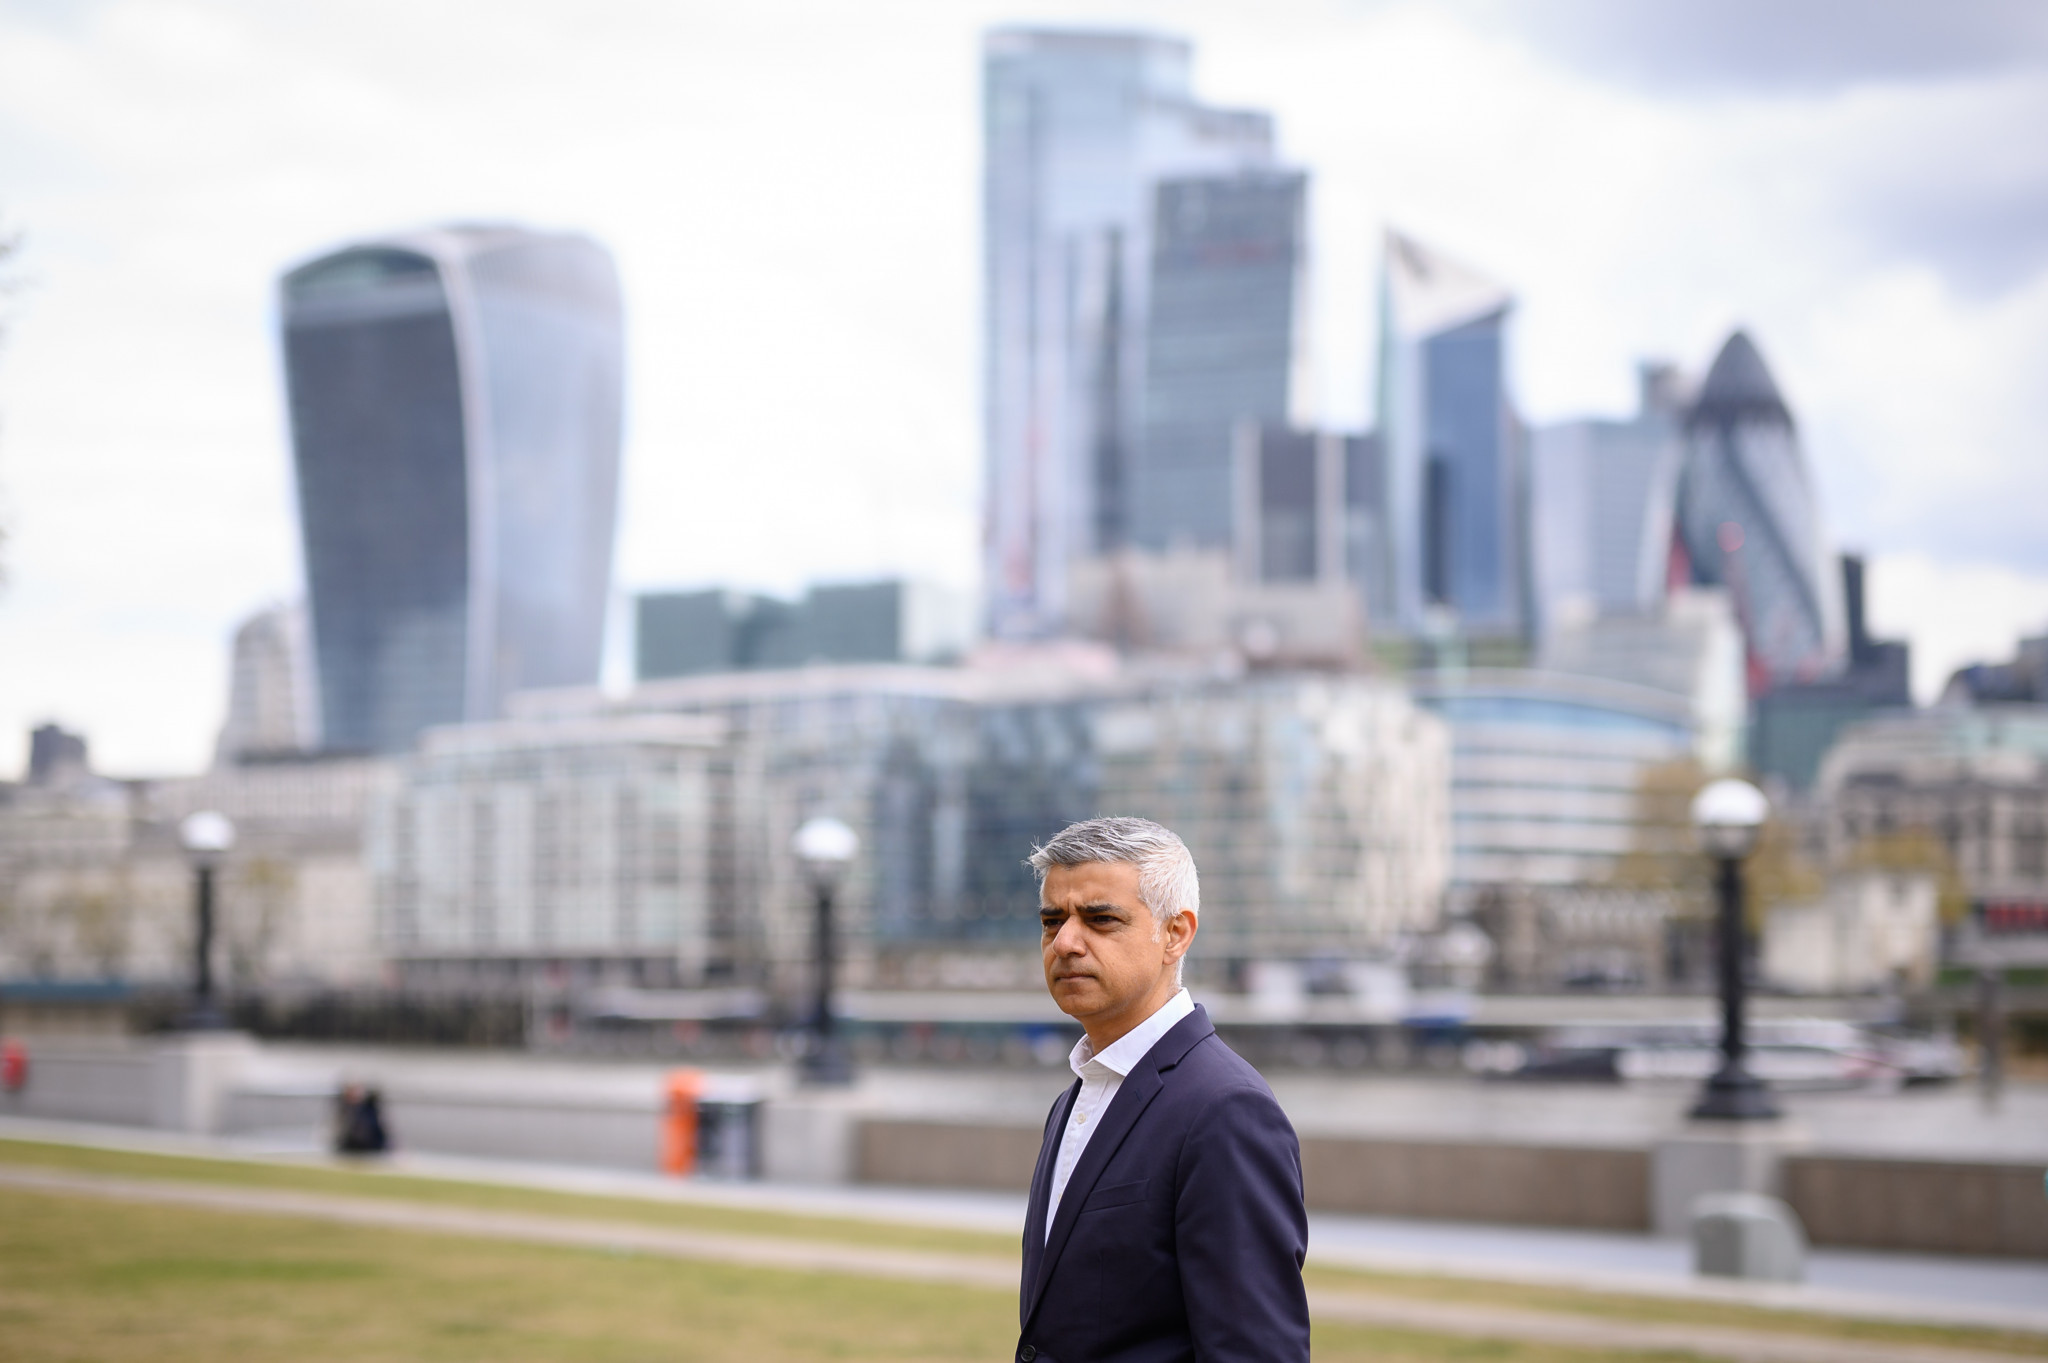 London Mayor Sadiq Khan has targeted a bid for the Olympic and Paralympic Games ©Getty Images